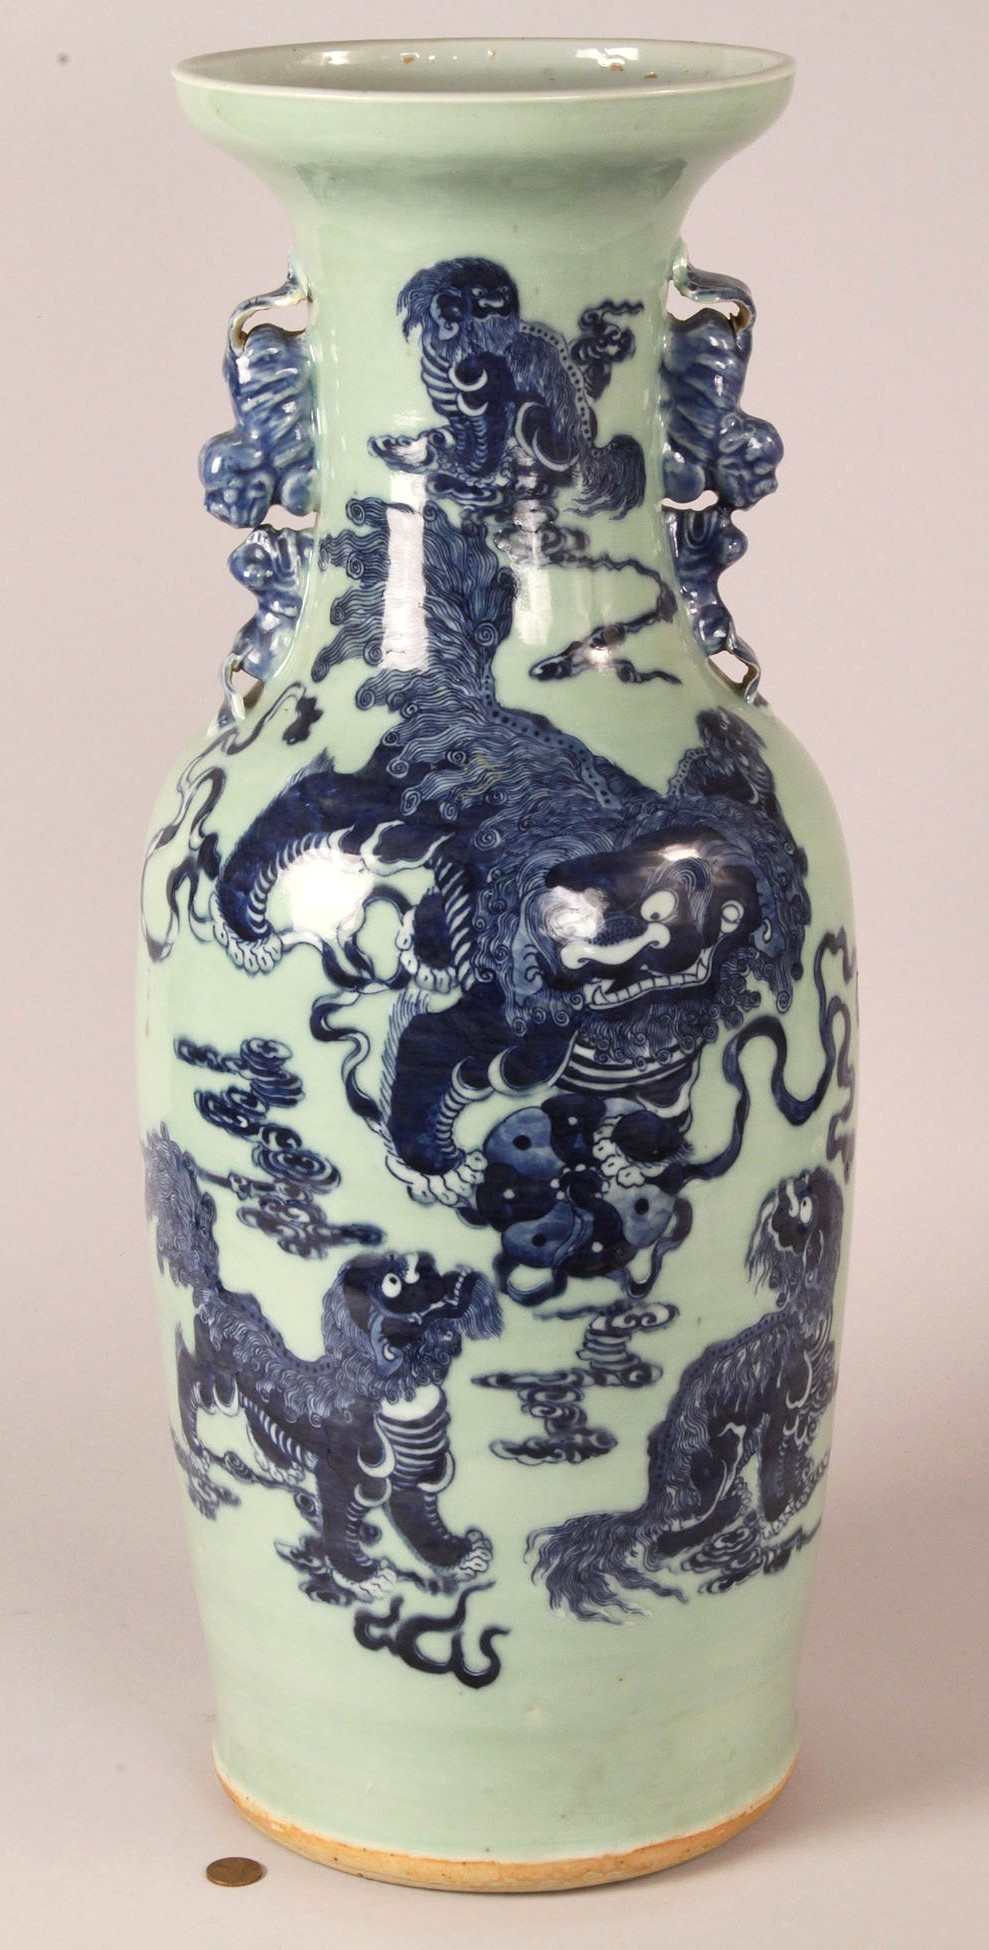 Lot 115 Chinese Temple Vase W Foo Dog Amp Dragon Decoration